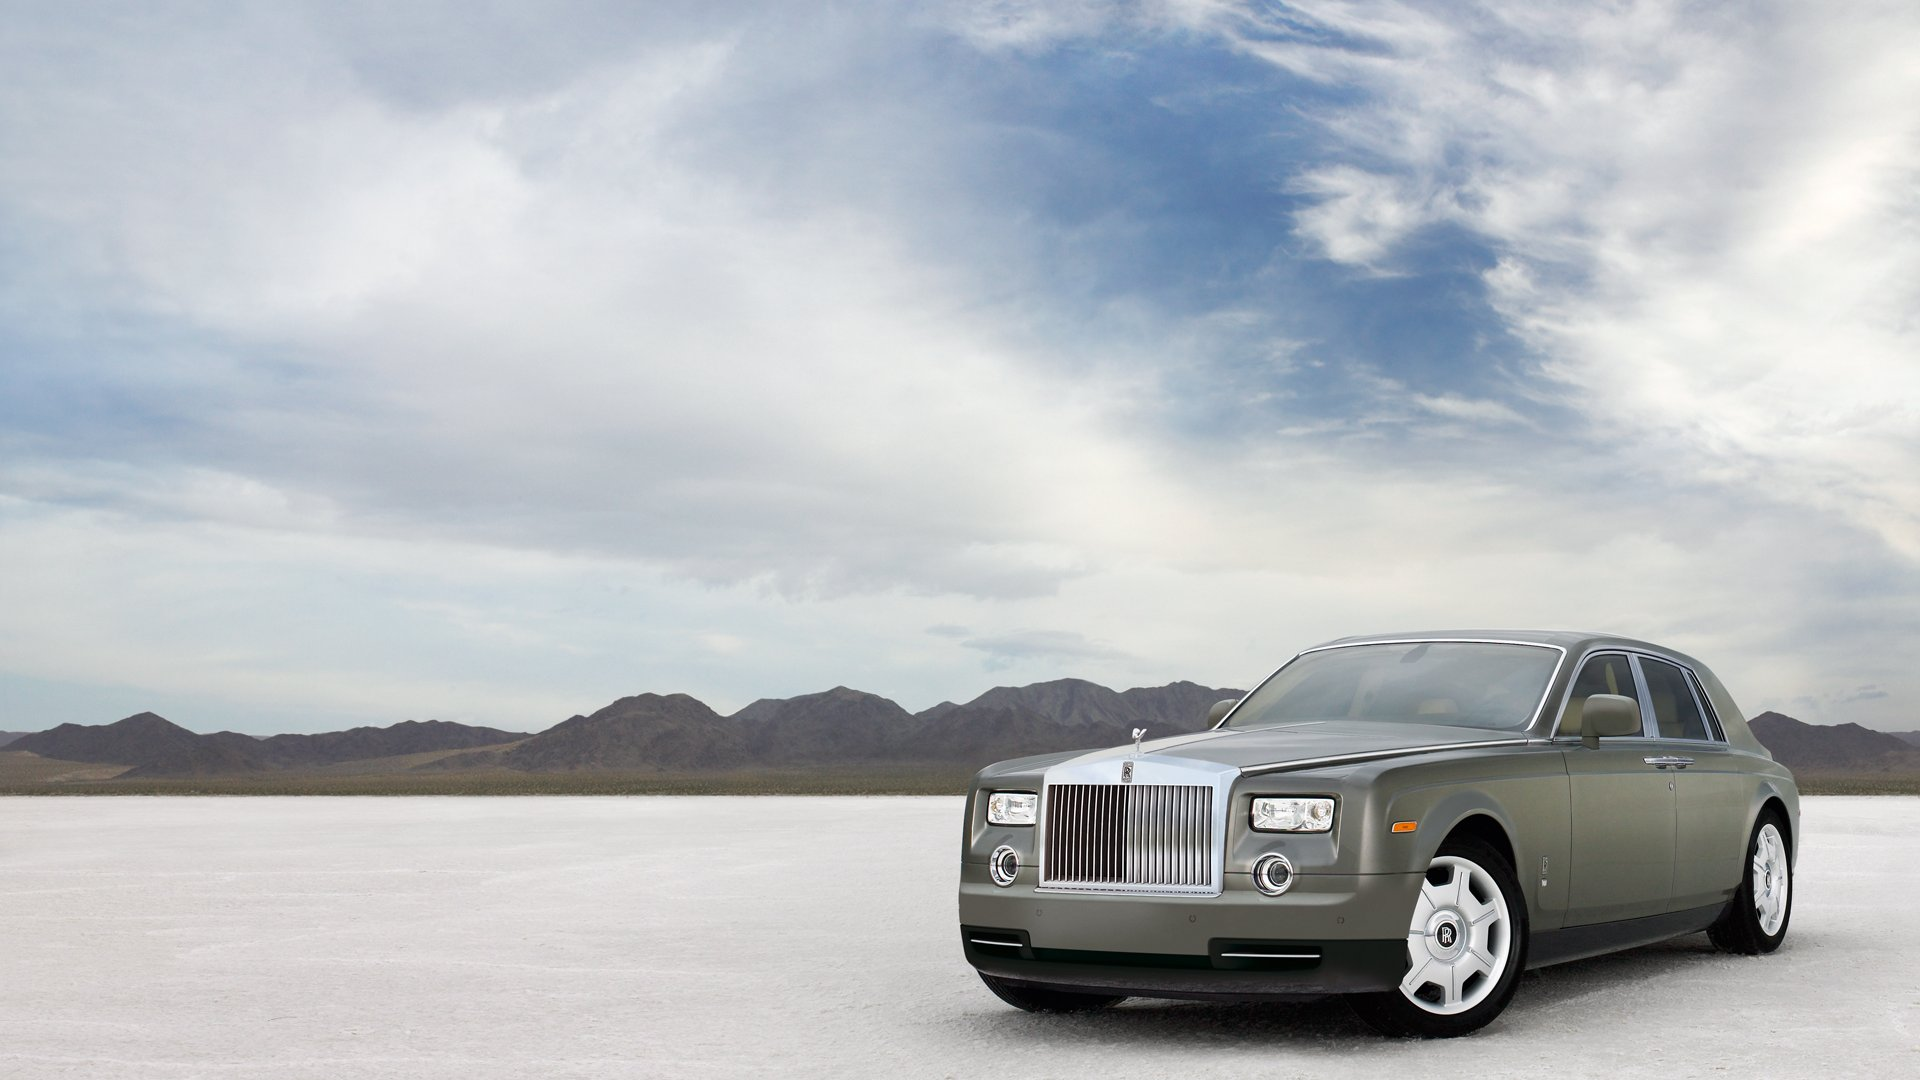 Muscle Car Hd Wallpapers 1080p 2012 Rolls Royce Phantom News And Information